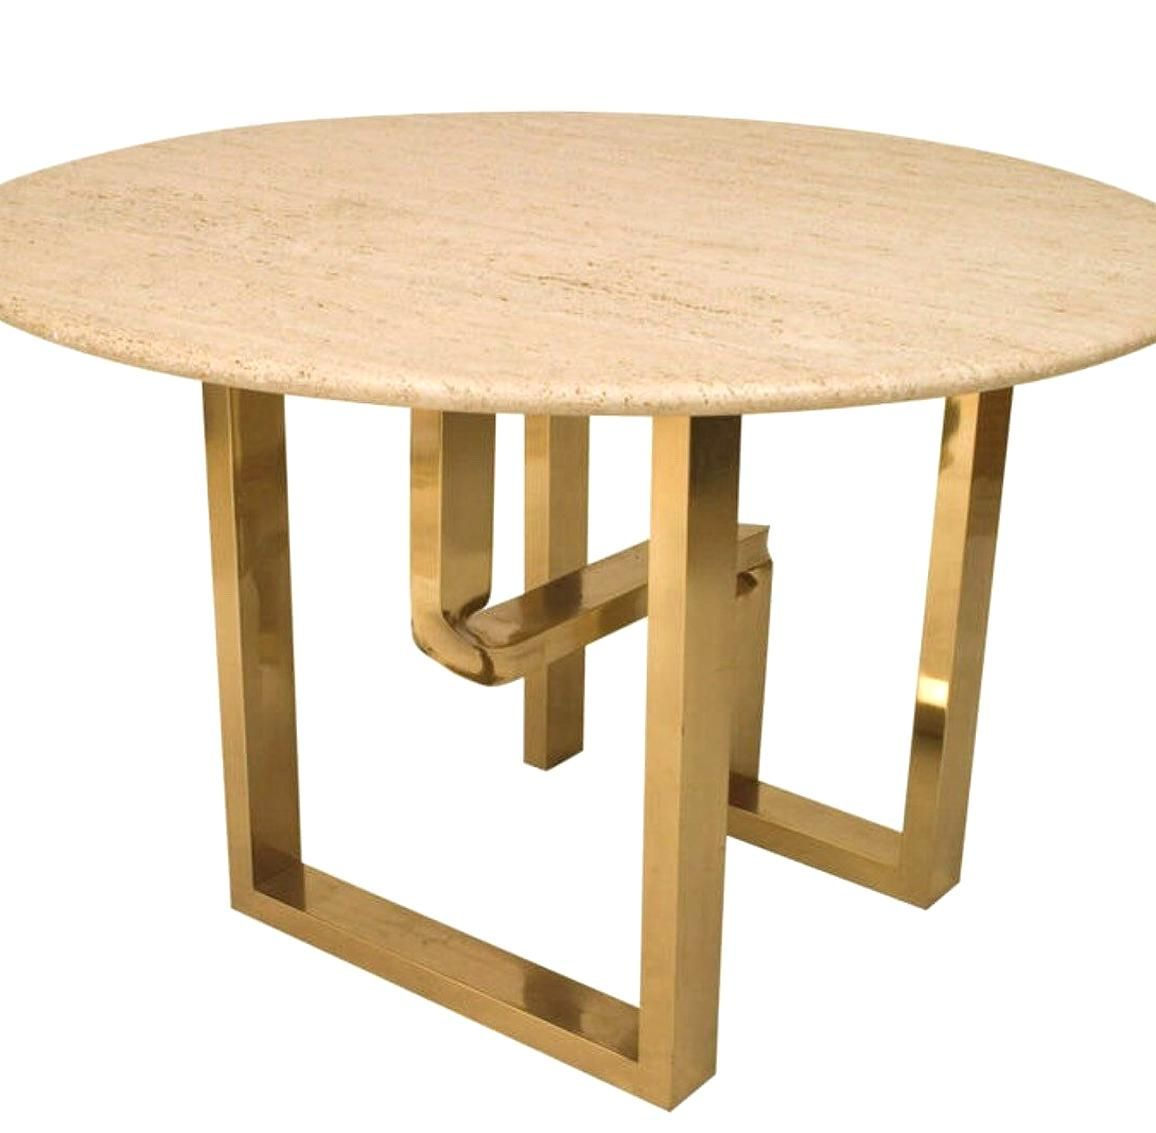 Height 305 Inches Depth 49 Inches American Center Table With A Geometric Twisted Brass Frame Base Supporting A Round T Center Table Table Modern Coffee Tables [ 1133 x 1156 Pixel ]